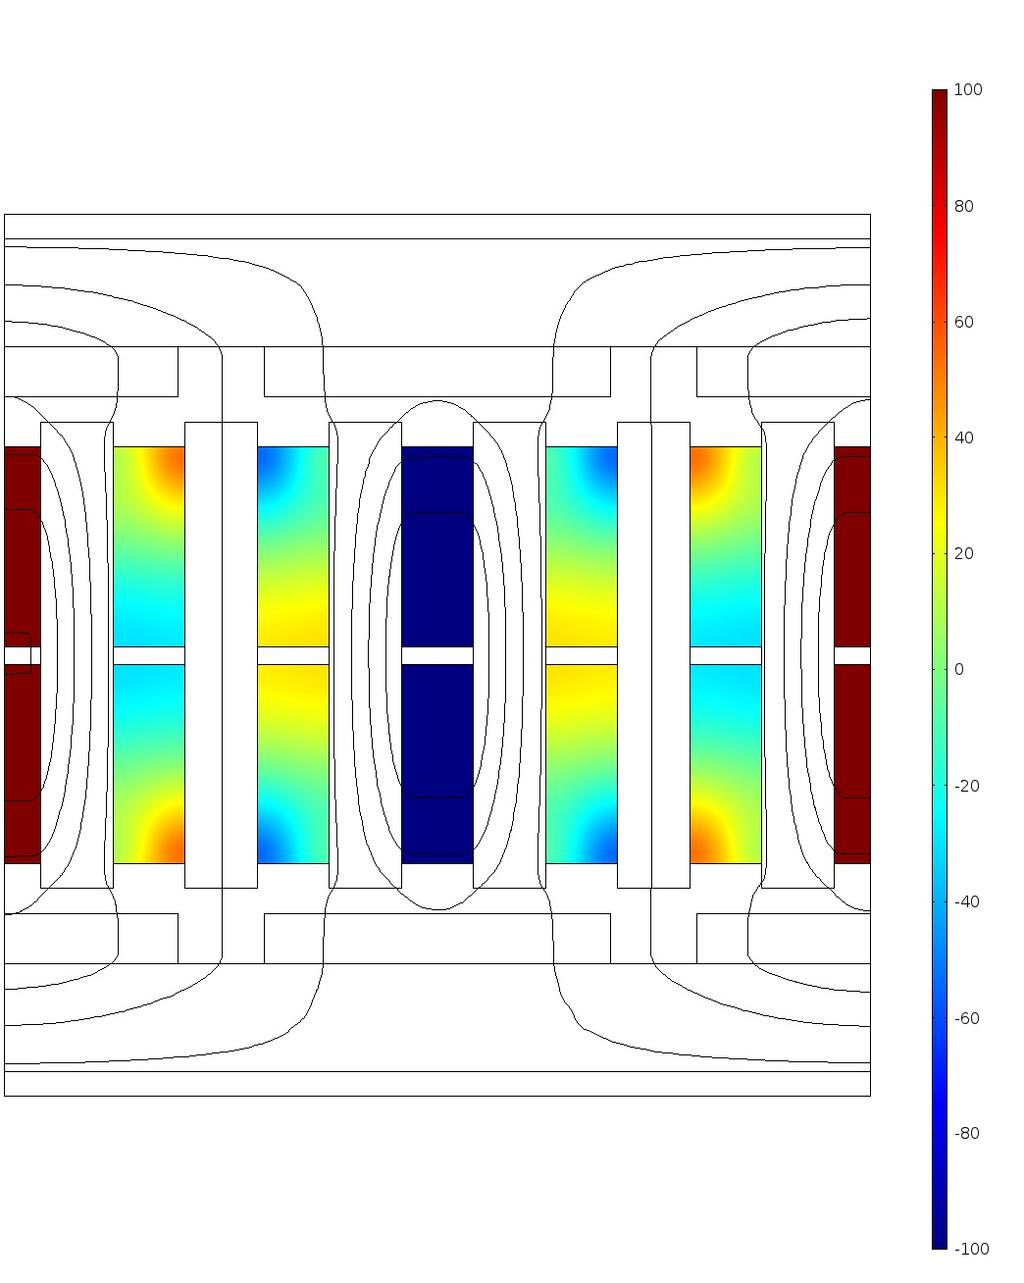 Analysis Of A Novel Coil Design For Axial Flux Machines Pdf Synchronizing Selections Between Solidworksr And Comsol Multiphysics Master Thesis Sigbjrn Lomheim Spring 2013 31 Fig 70 Proximity Effect Without Iron